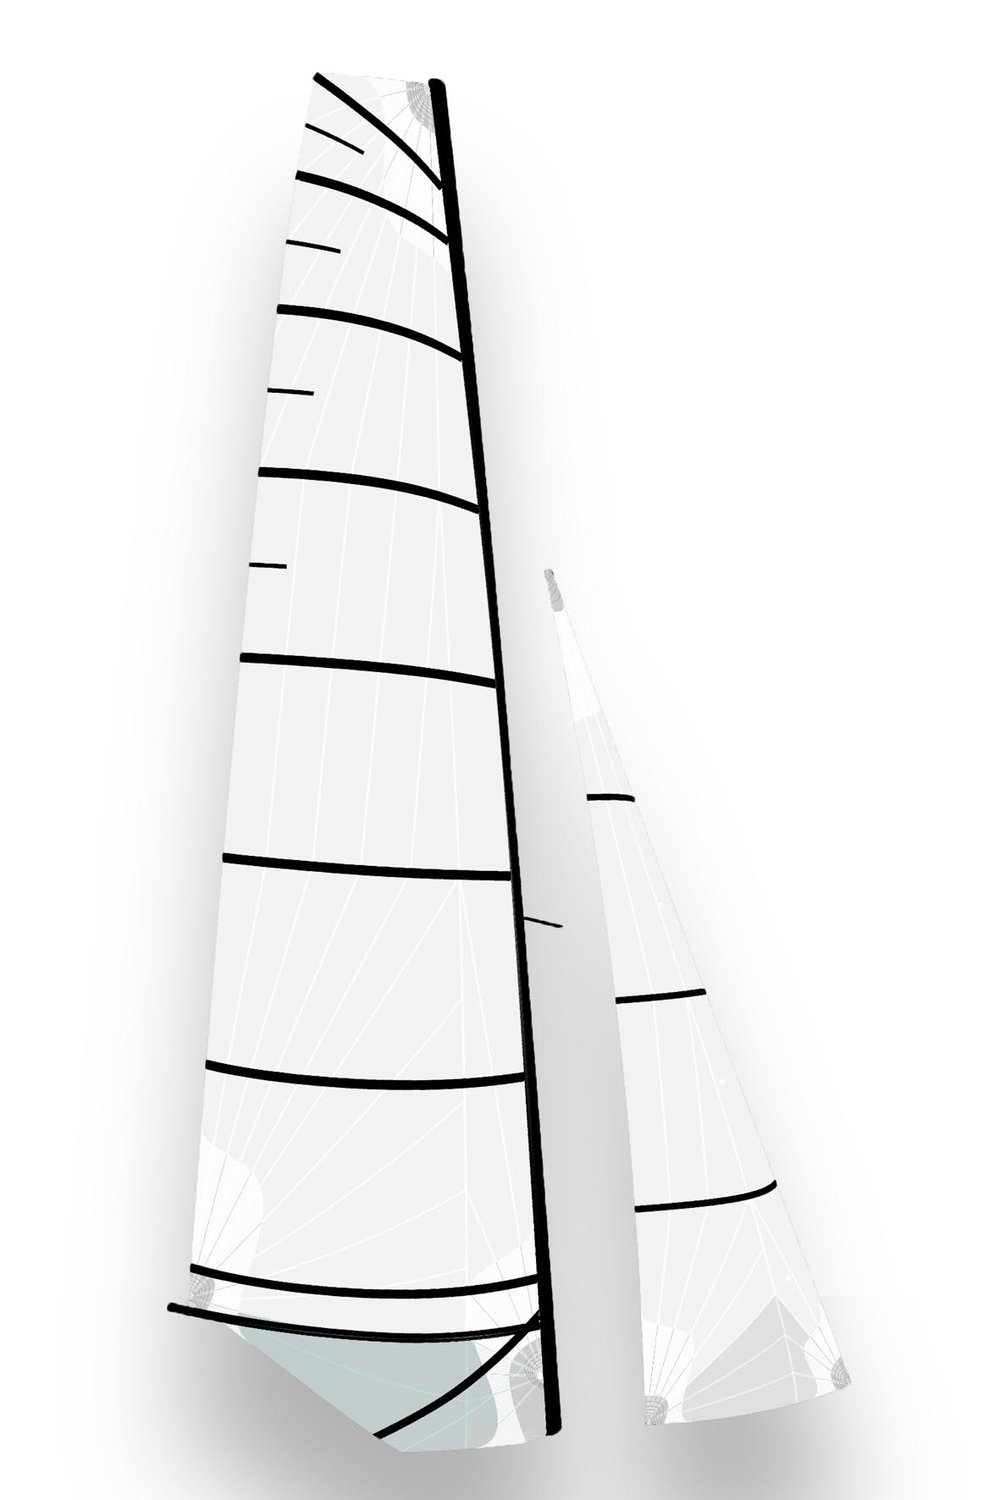 F18 - F18 DS MainsailRadial cut / Polyester laminate9 battensPrice : 2150 €*Aluminium boom : 560 €*F18 jibRadial cut / Pentex laminate3 battensPrice : 640 €*F18 spinnakerRadial cut / Nylon or Polyester2 retrieving patchesPrice : Nylon 890 €*Polyester 1190€*